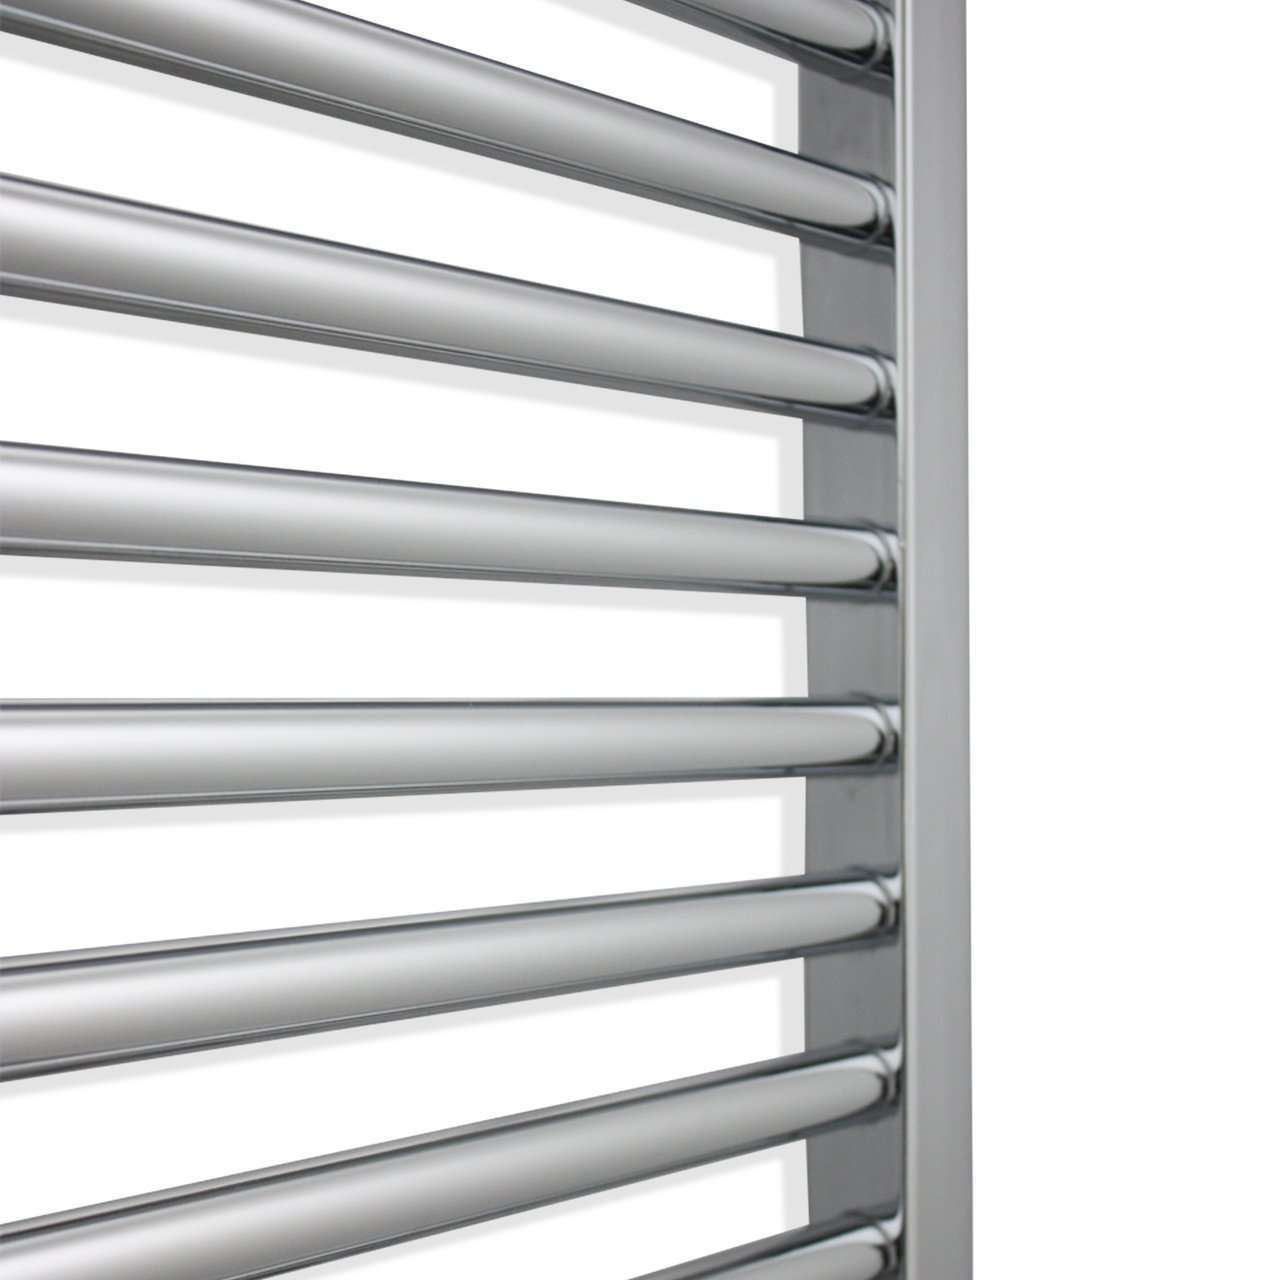 750mm Wide 1000mm High Flat Chrome Heated Towel Rail Radiator HTR